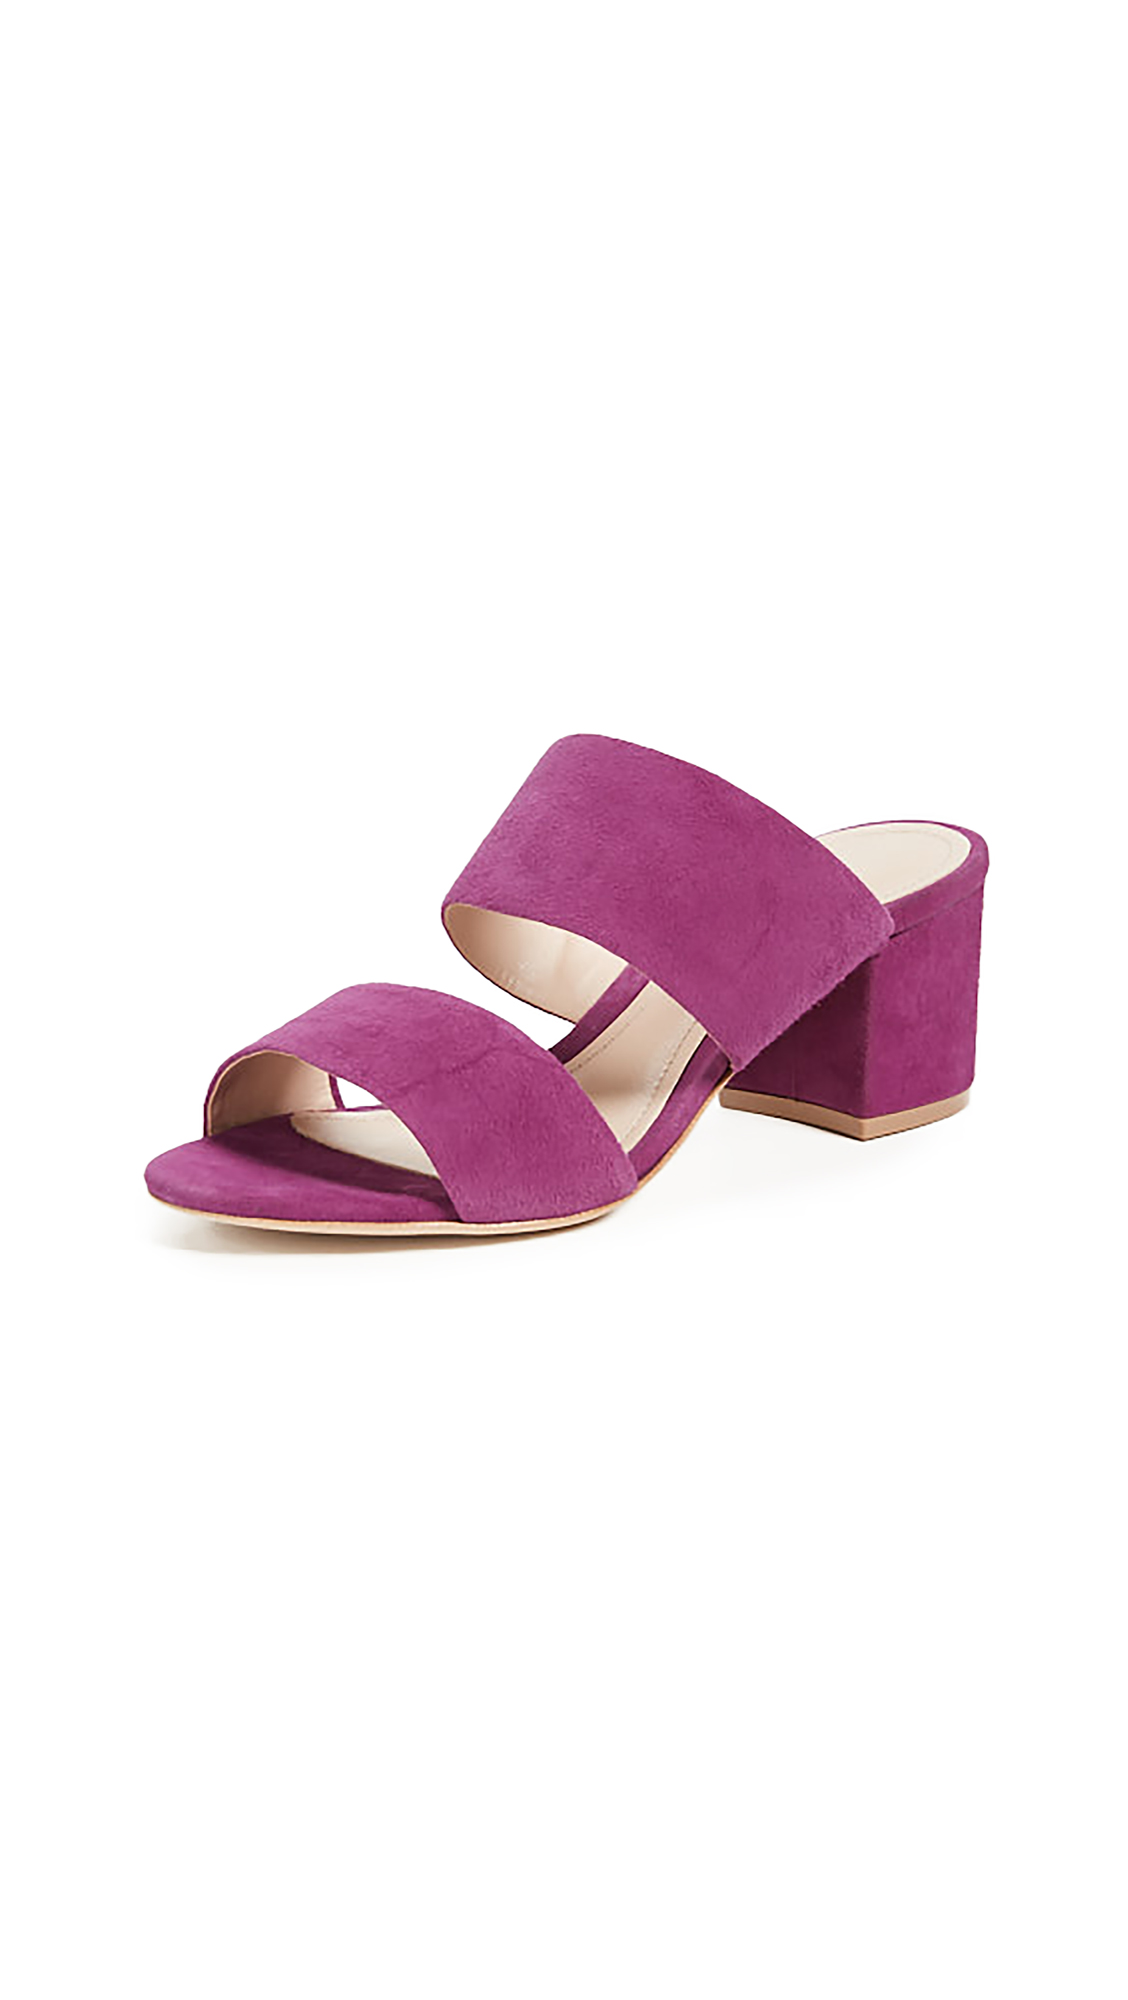 Schutz Rashne Double Strap Sandals - Grape